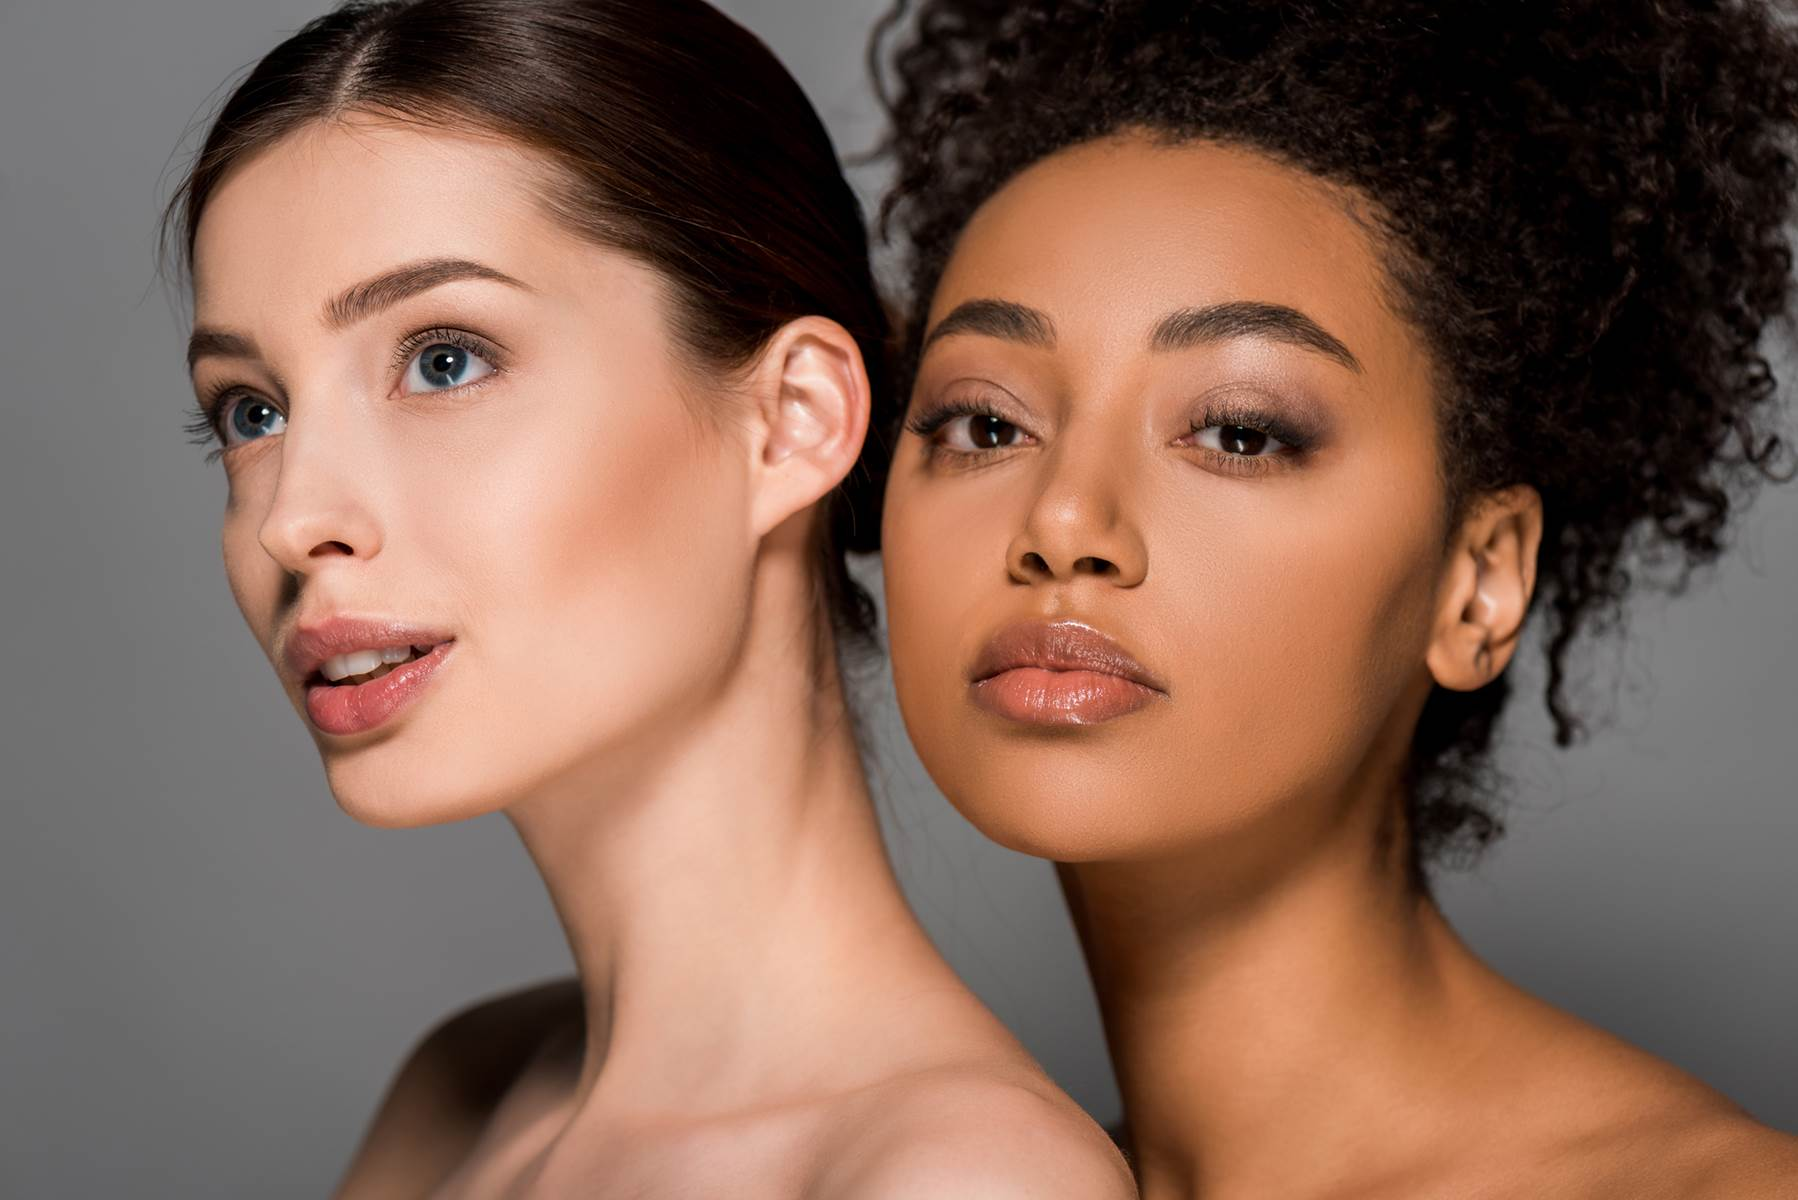 Multiracial women with perfect skin